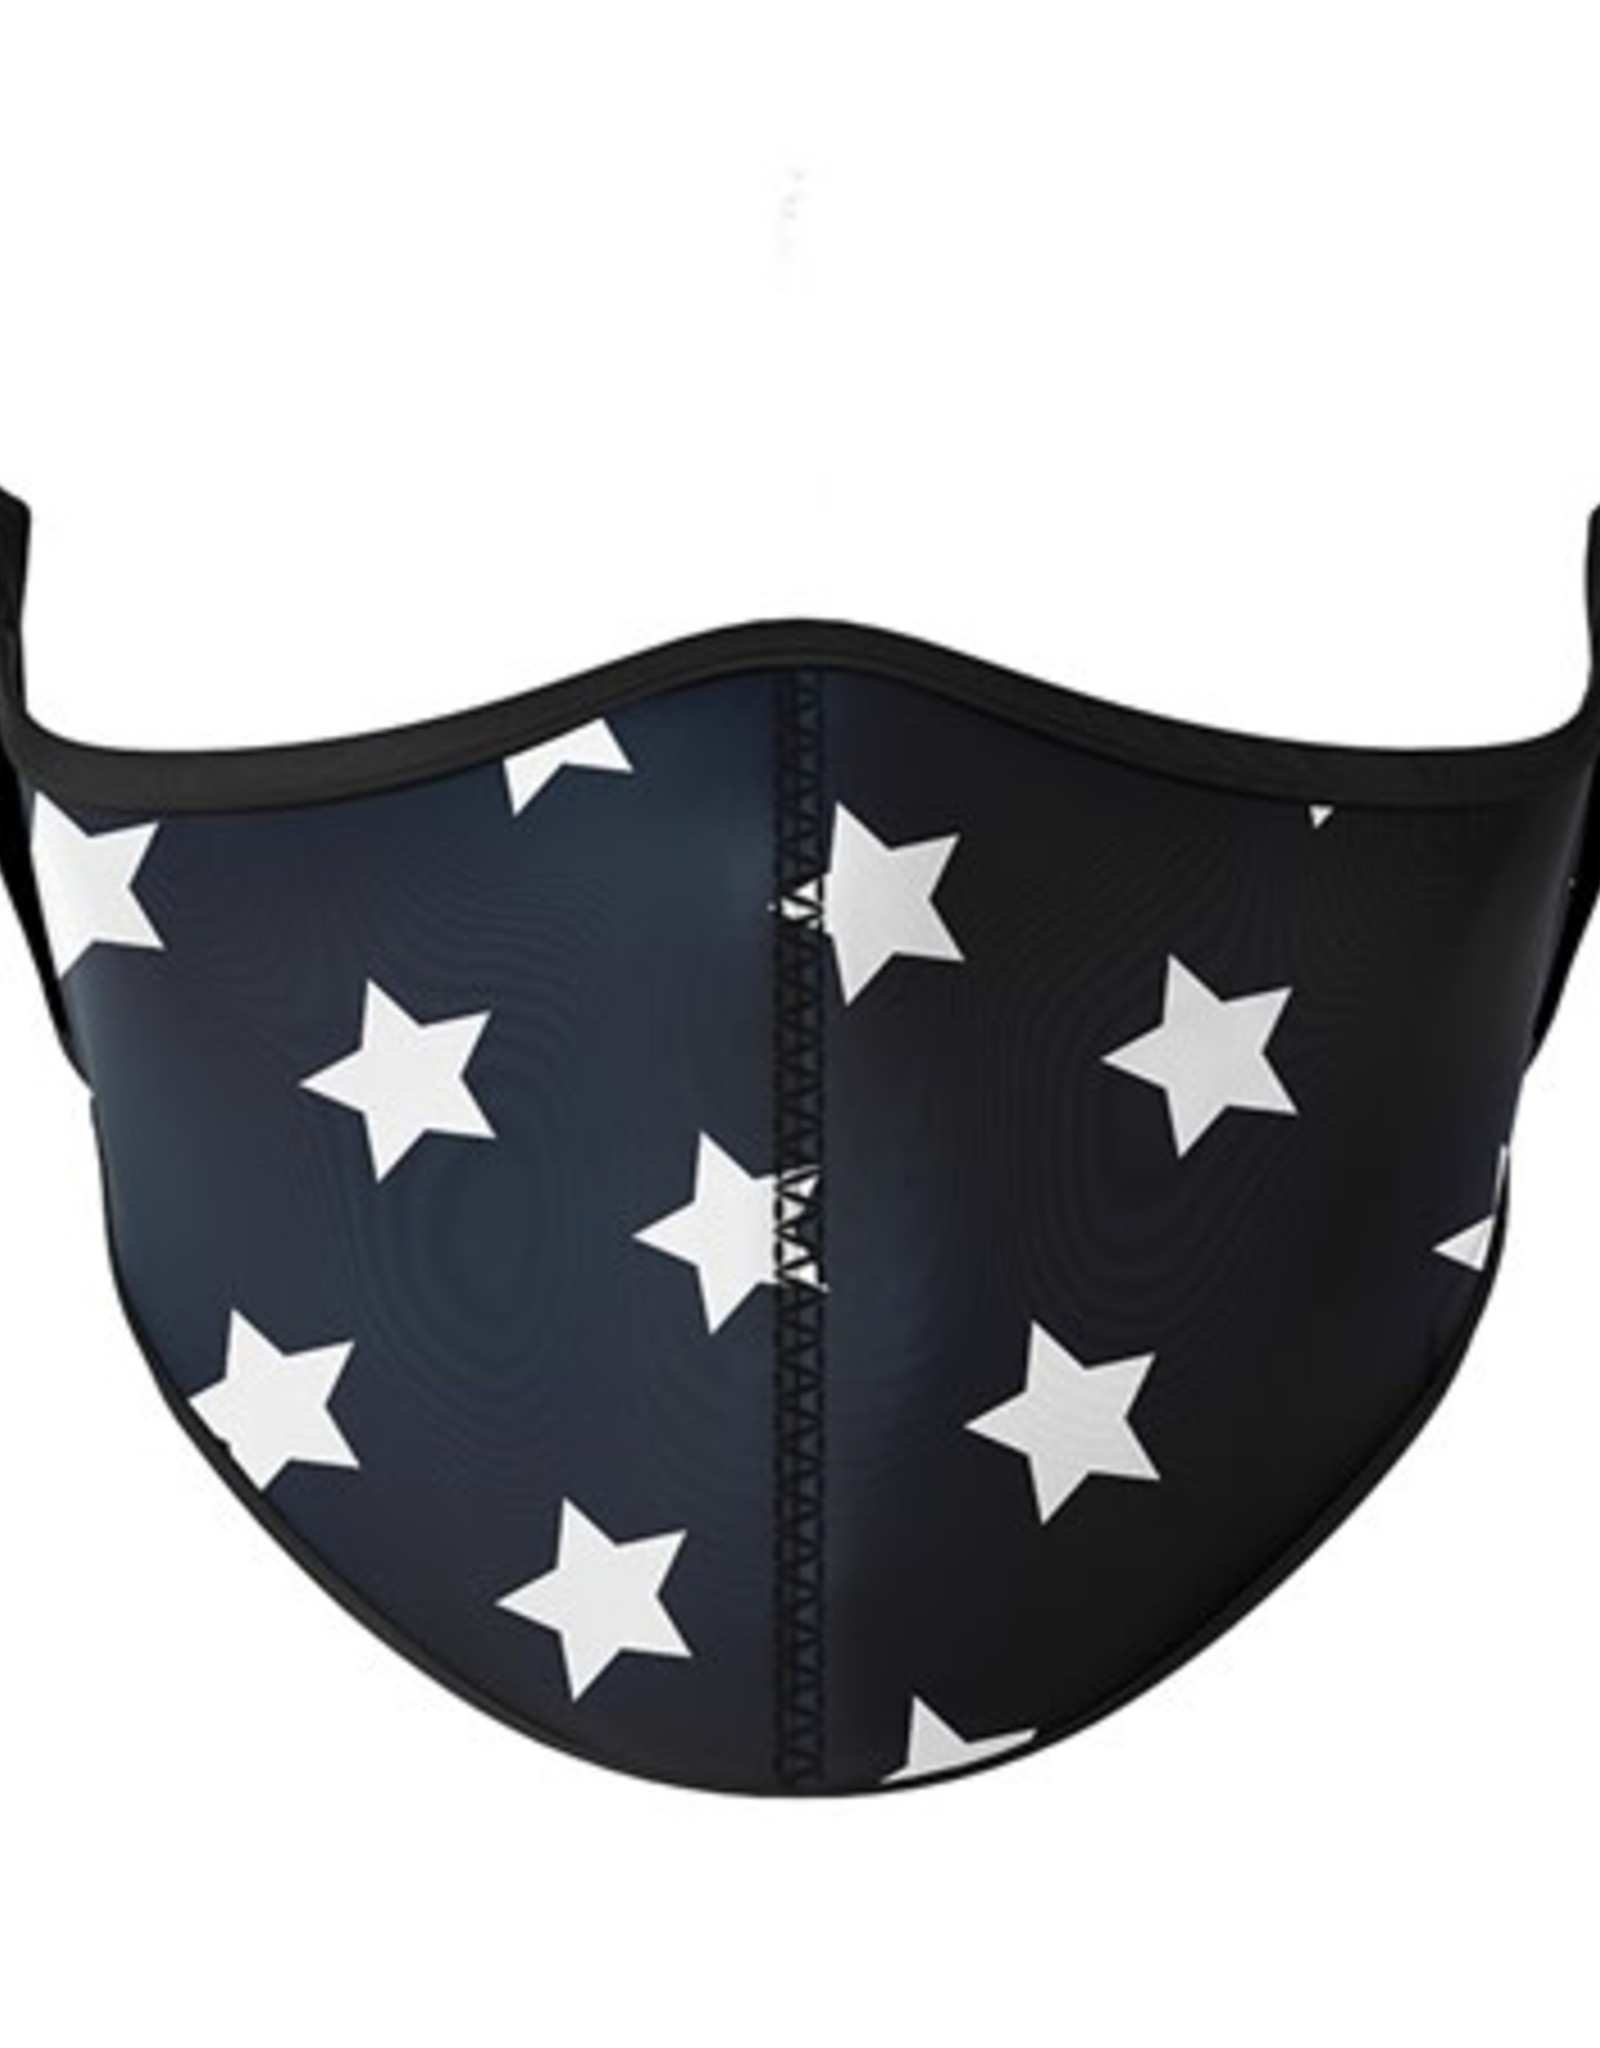 Top Trenz Fashion Face Mask, Large, White Star with black background